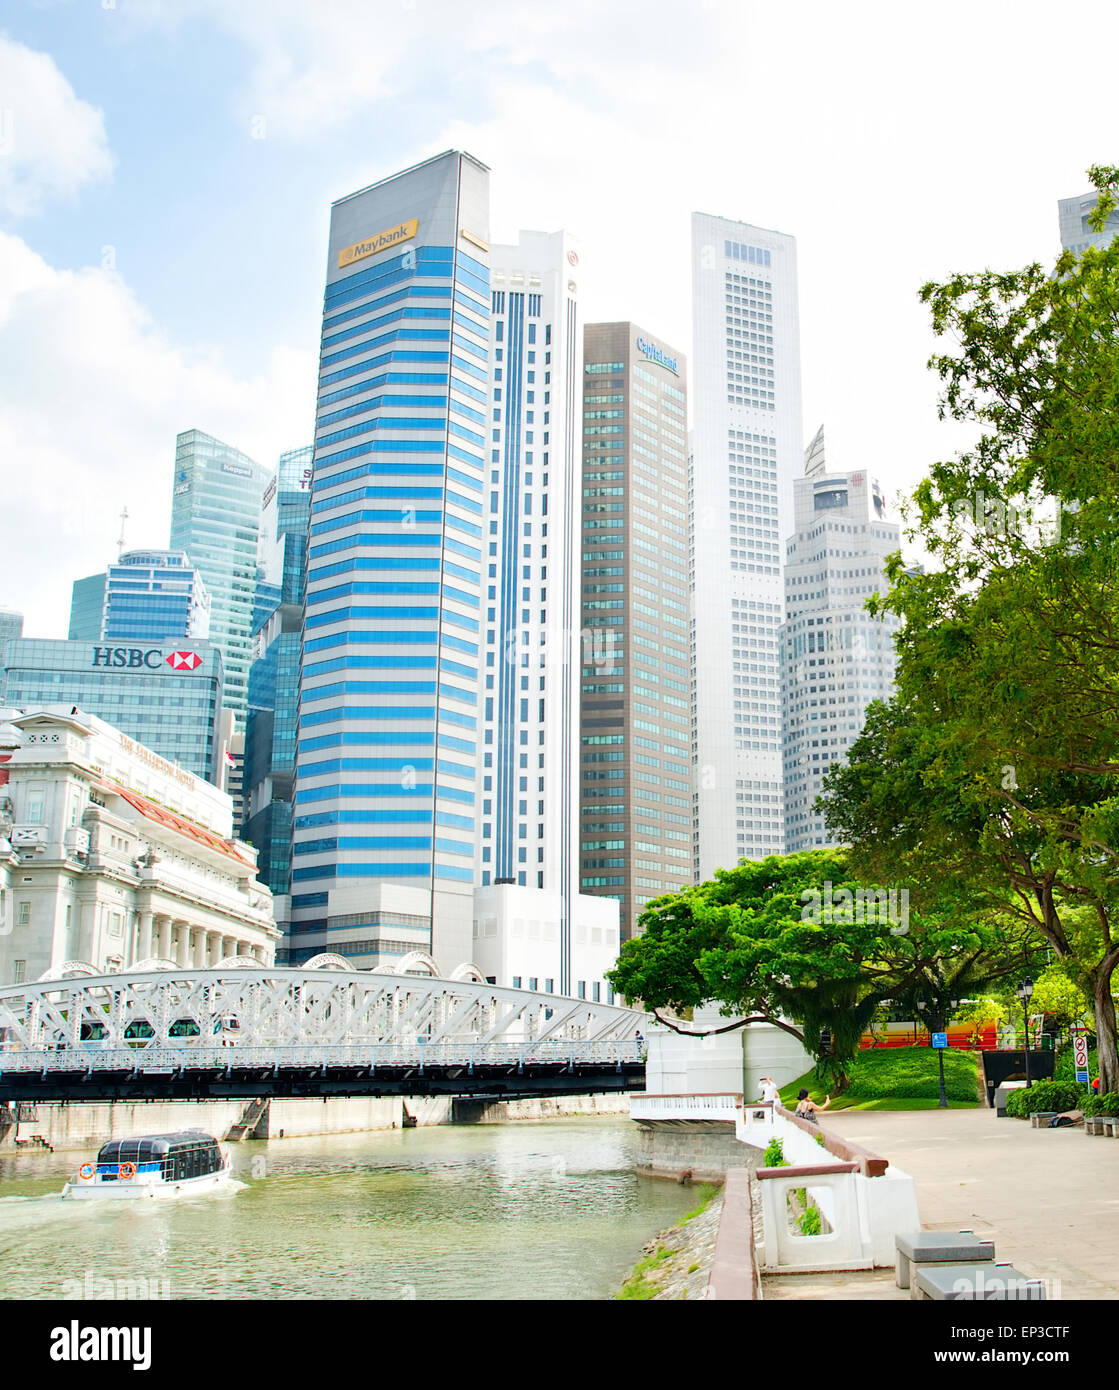 Downtown Core of Singapore. The Downtown Core is a 266-hectare urban planning area - Stock Image